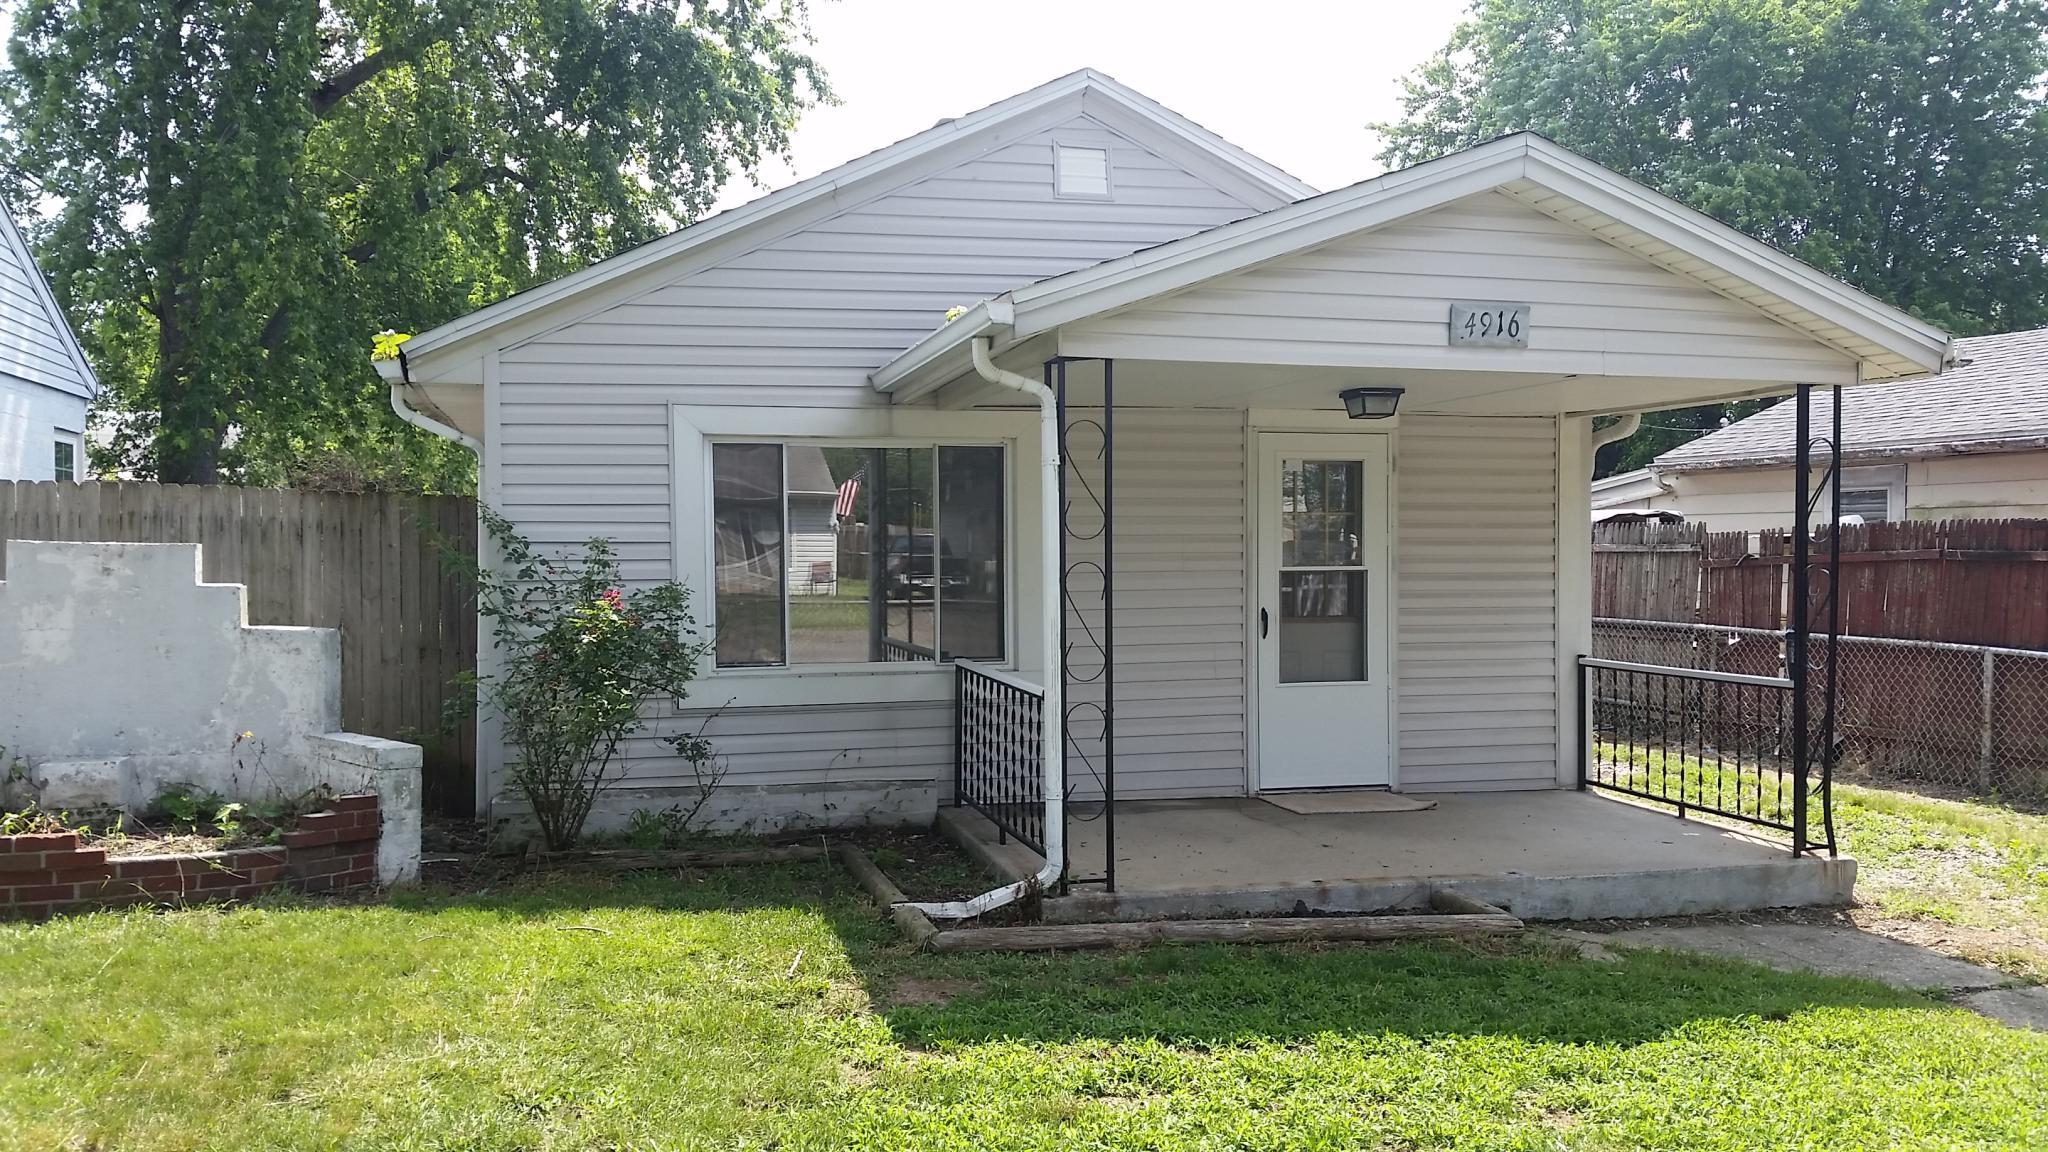 4916 Wire Dr For Rent - Dayton, OH | Trulia